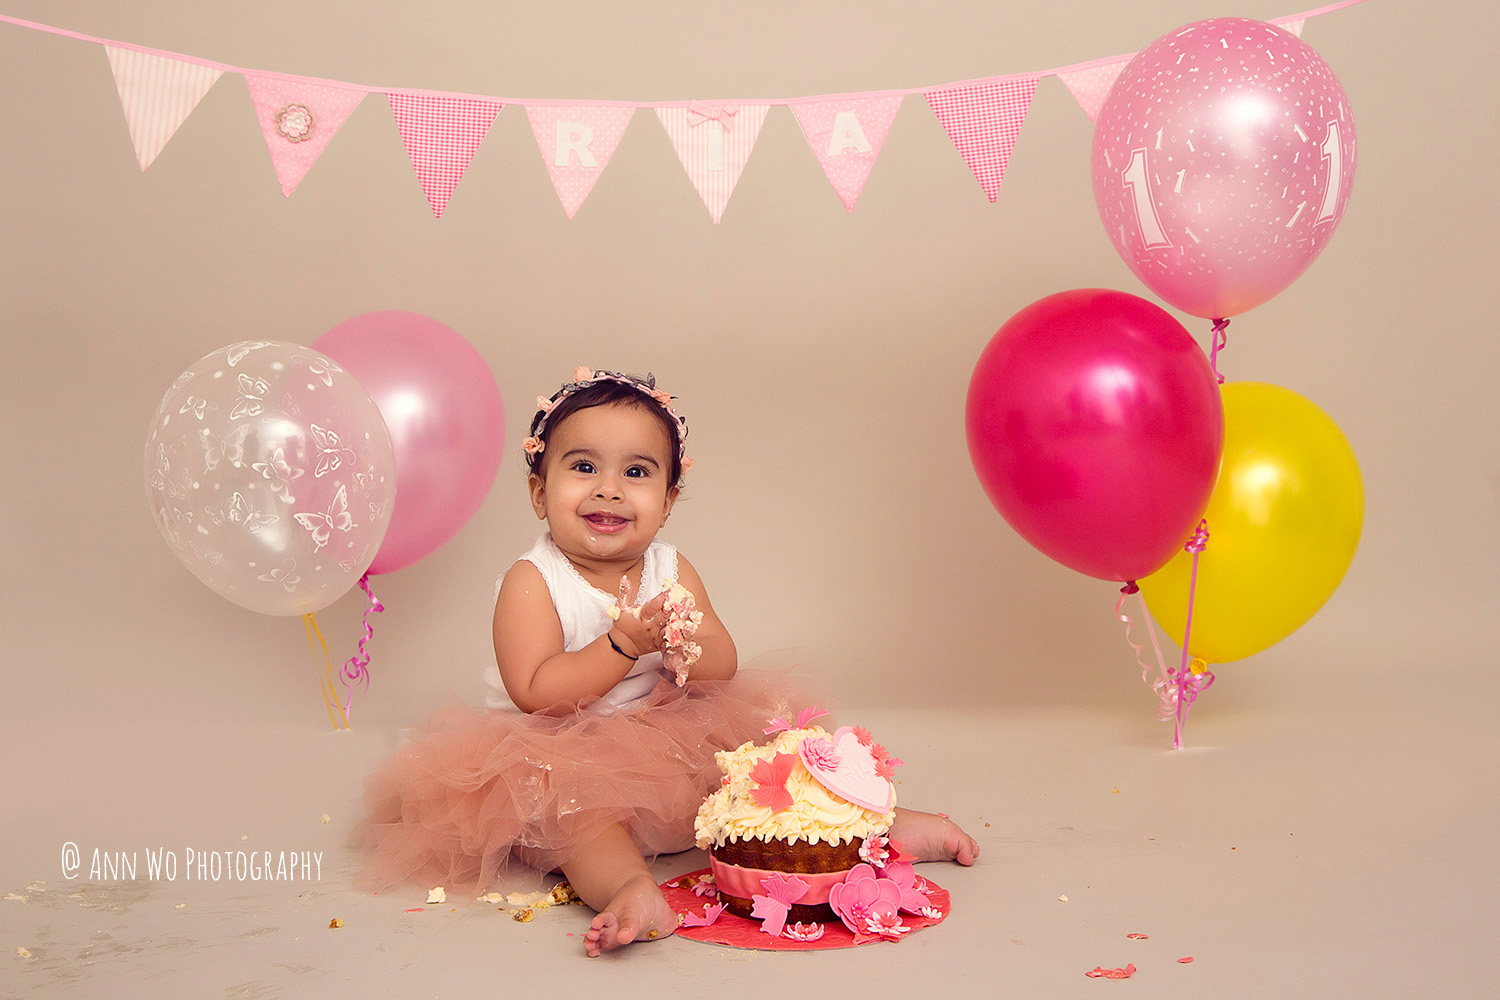 cake-smash-ria-london-baby-photographer18.jpg